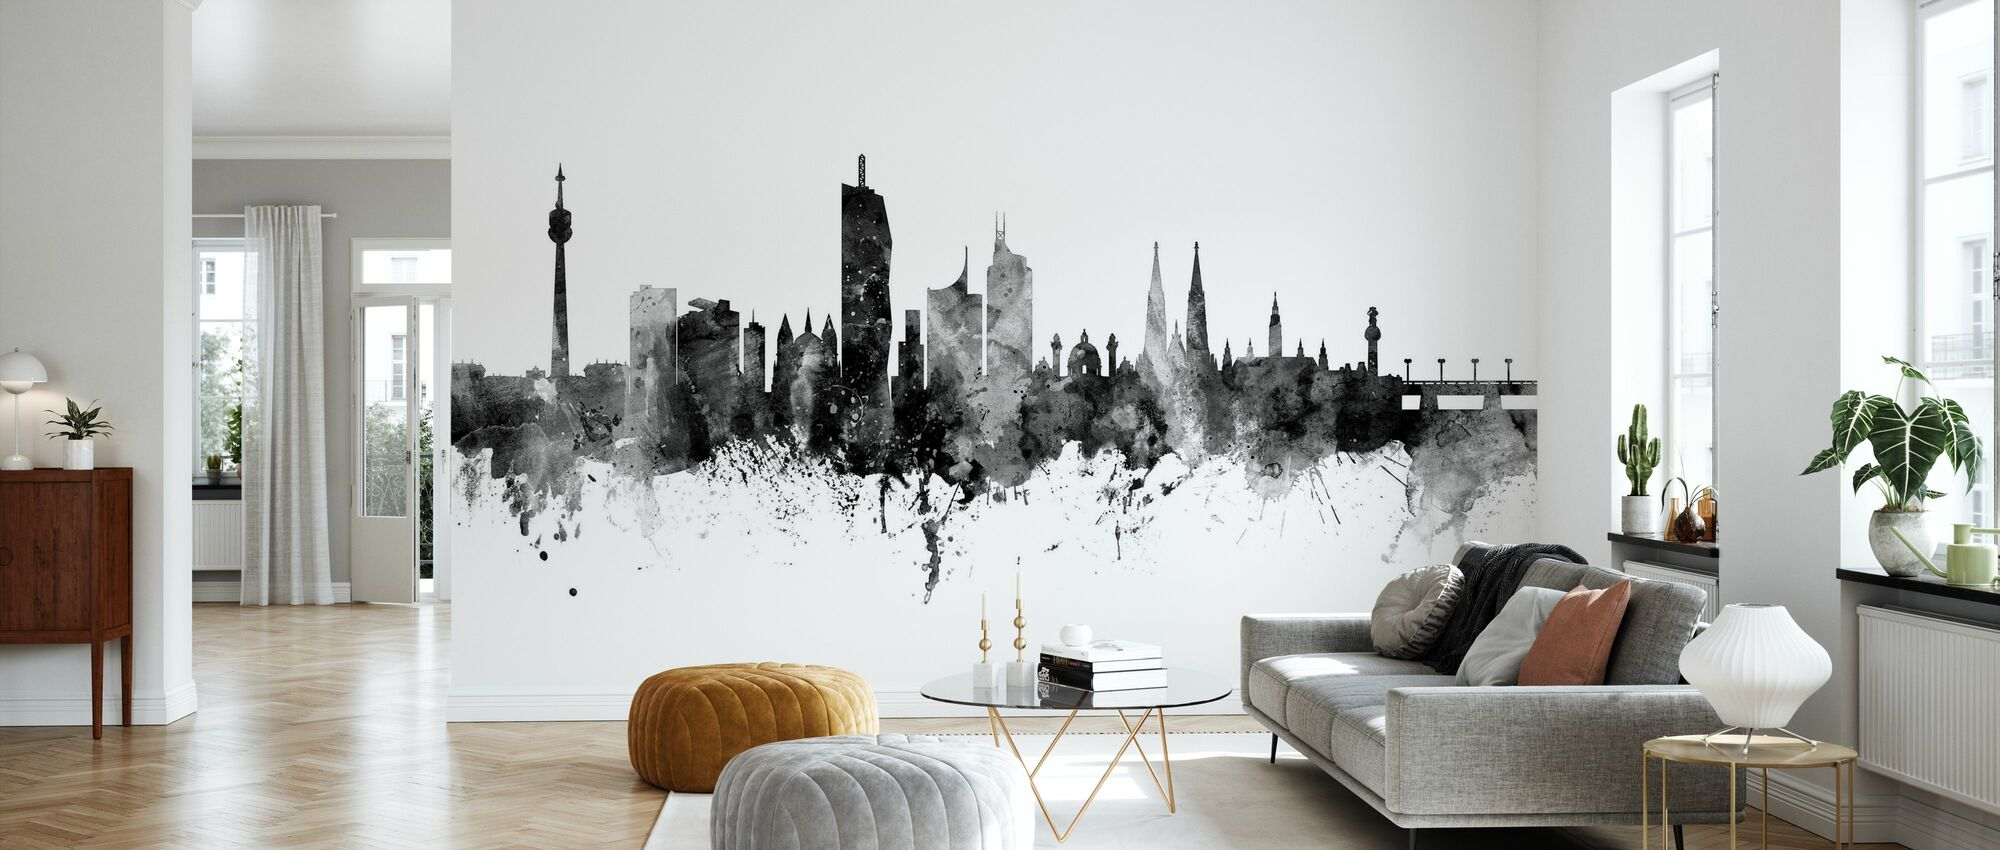 Vienna Skyline Black - Wallpaper - Living Room